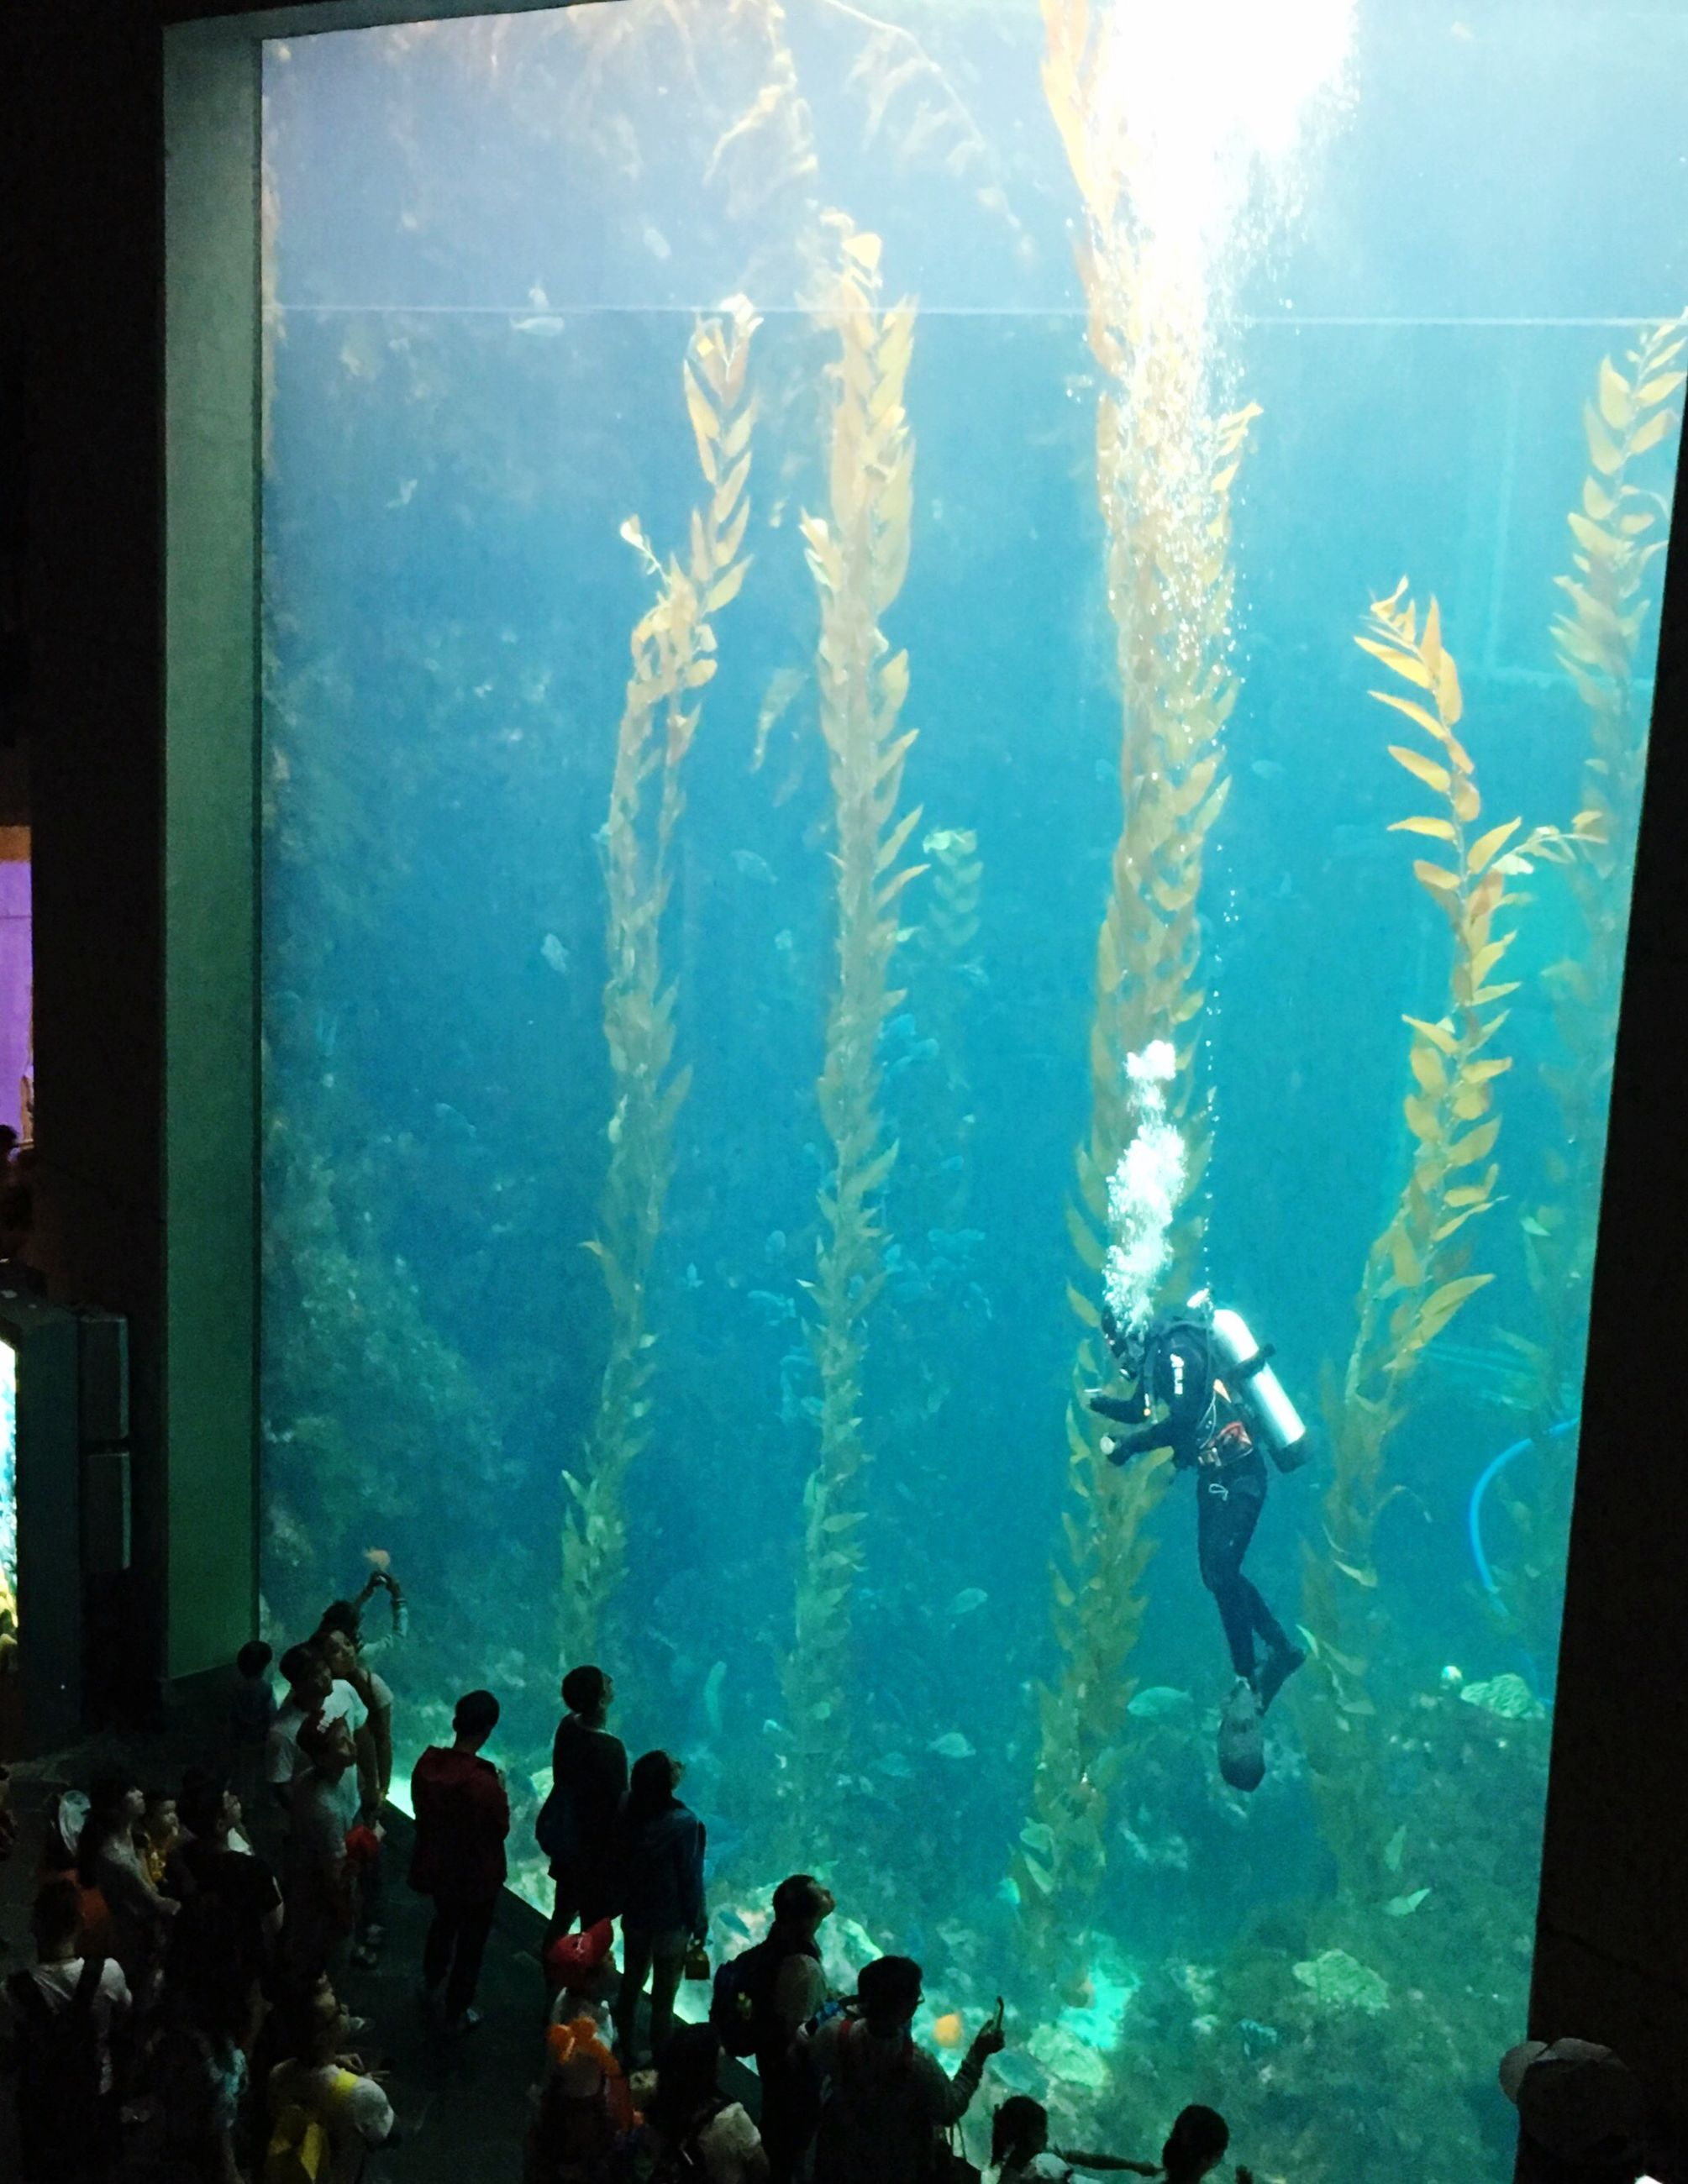 indoors, water, large group of people, watching, swimming, transparent, togetherness, aquarium, person, exploration, blue, enjoyment, tourism, weekend activities, vacations, adventure